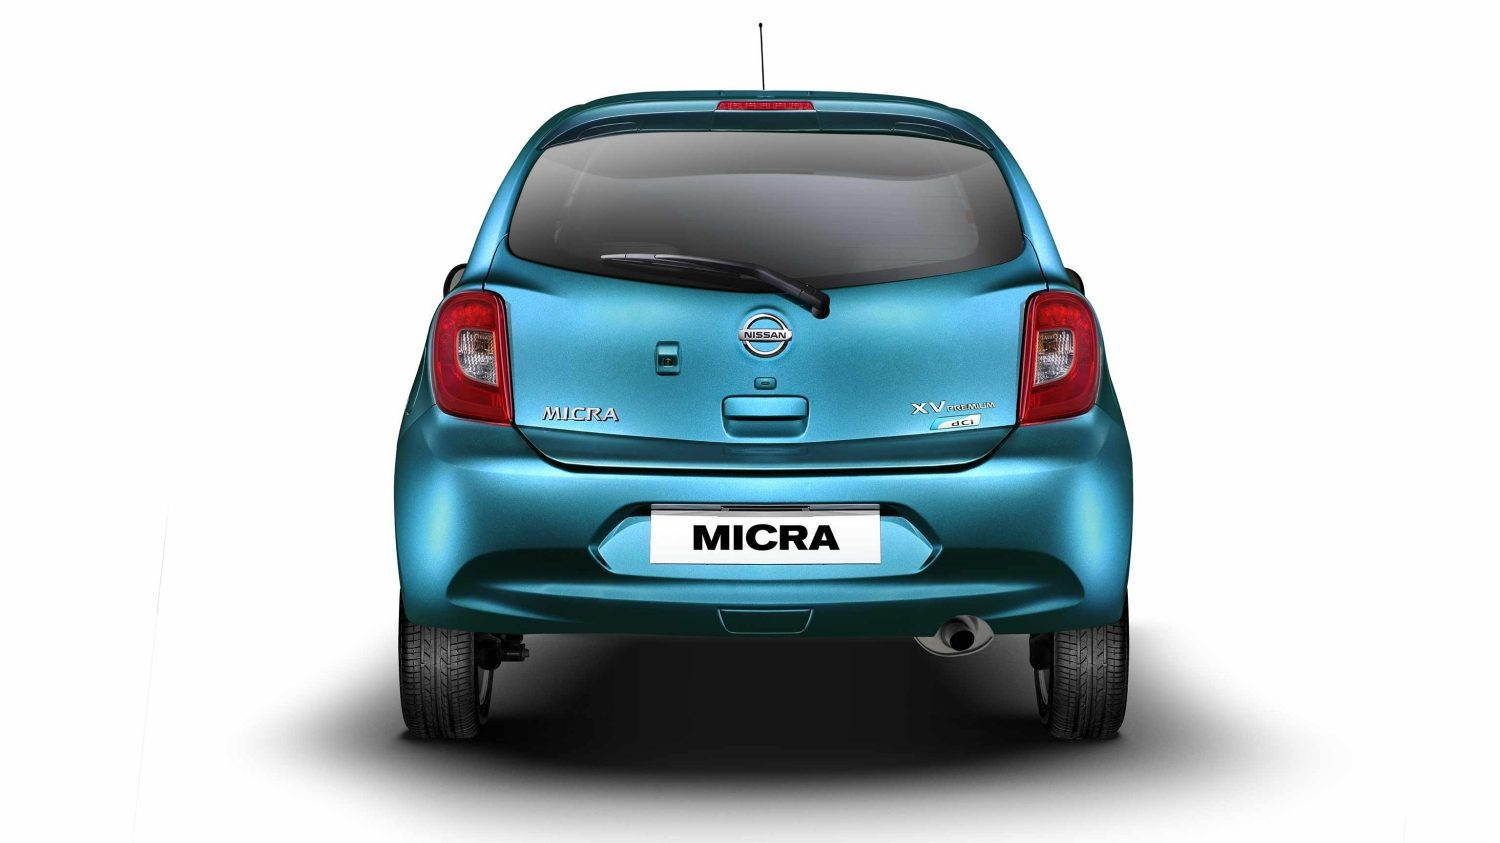 Nissan Micra Turquoise Blue